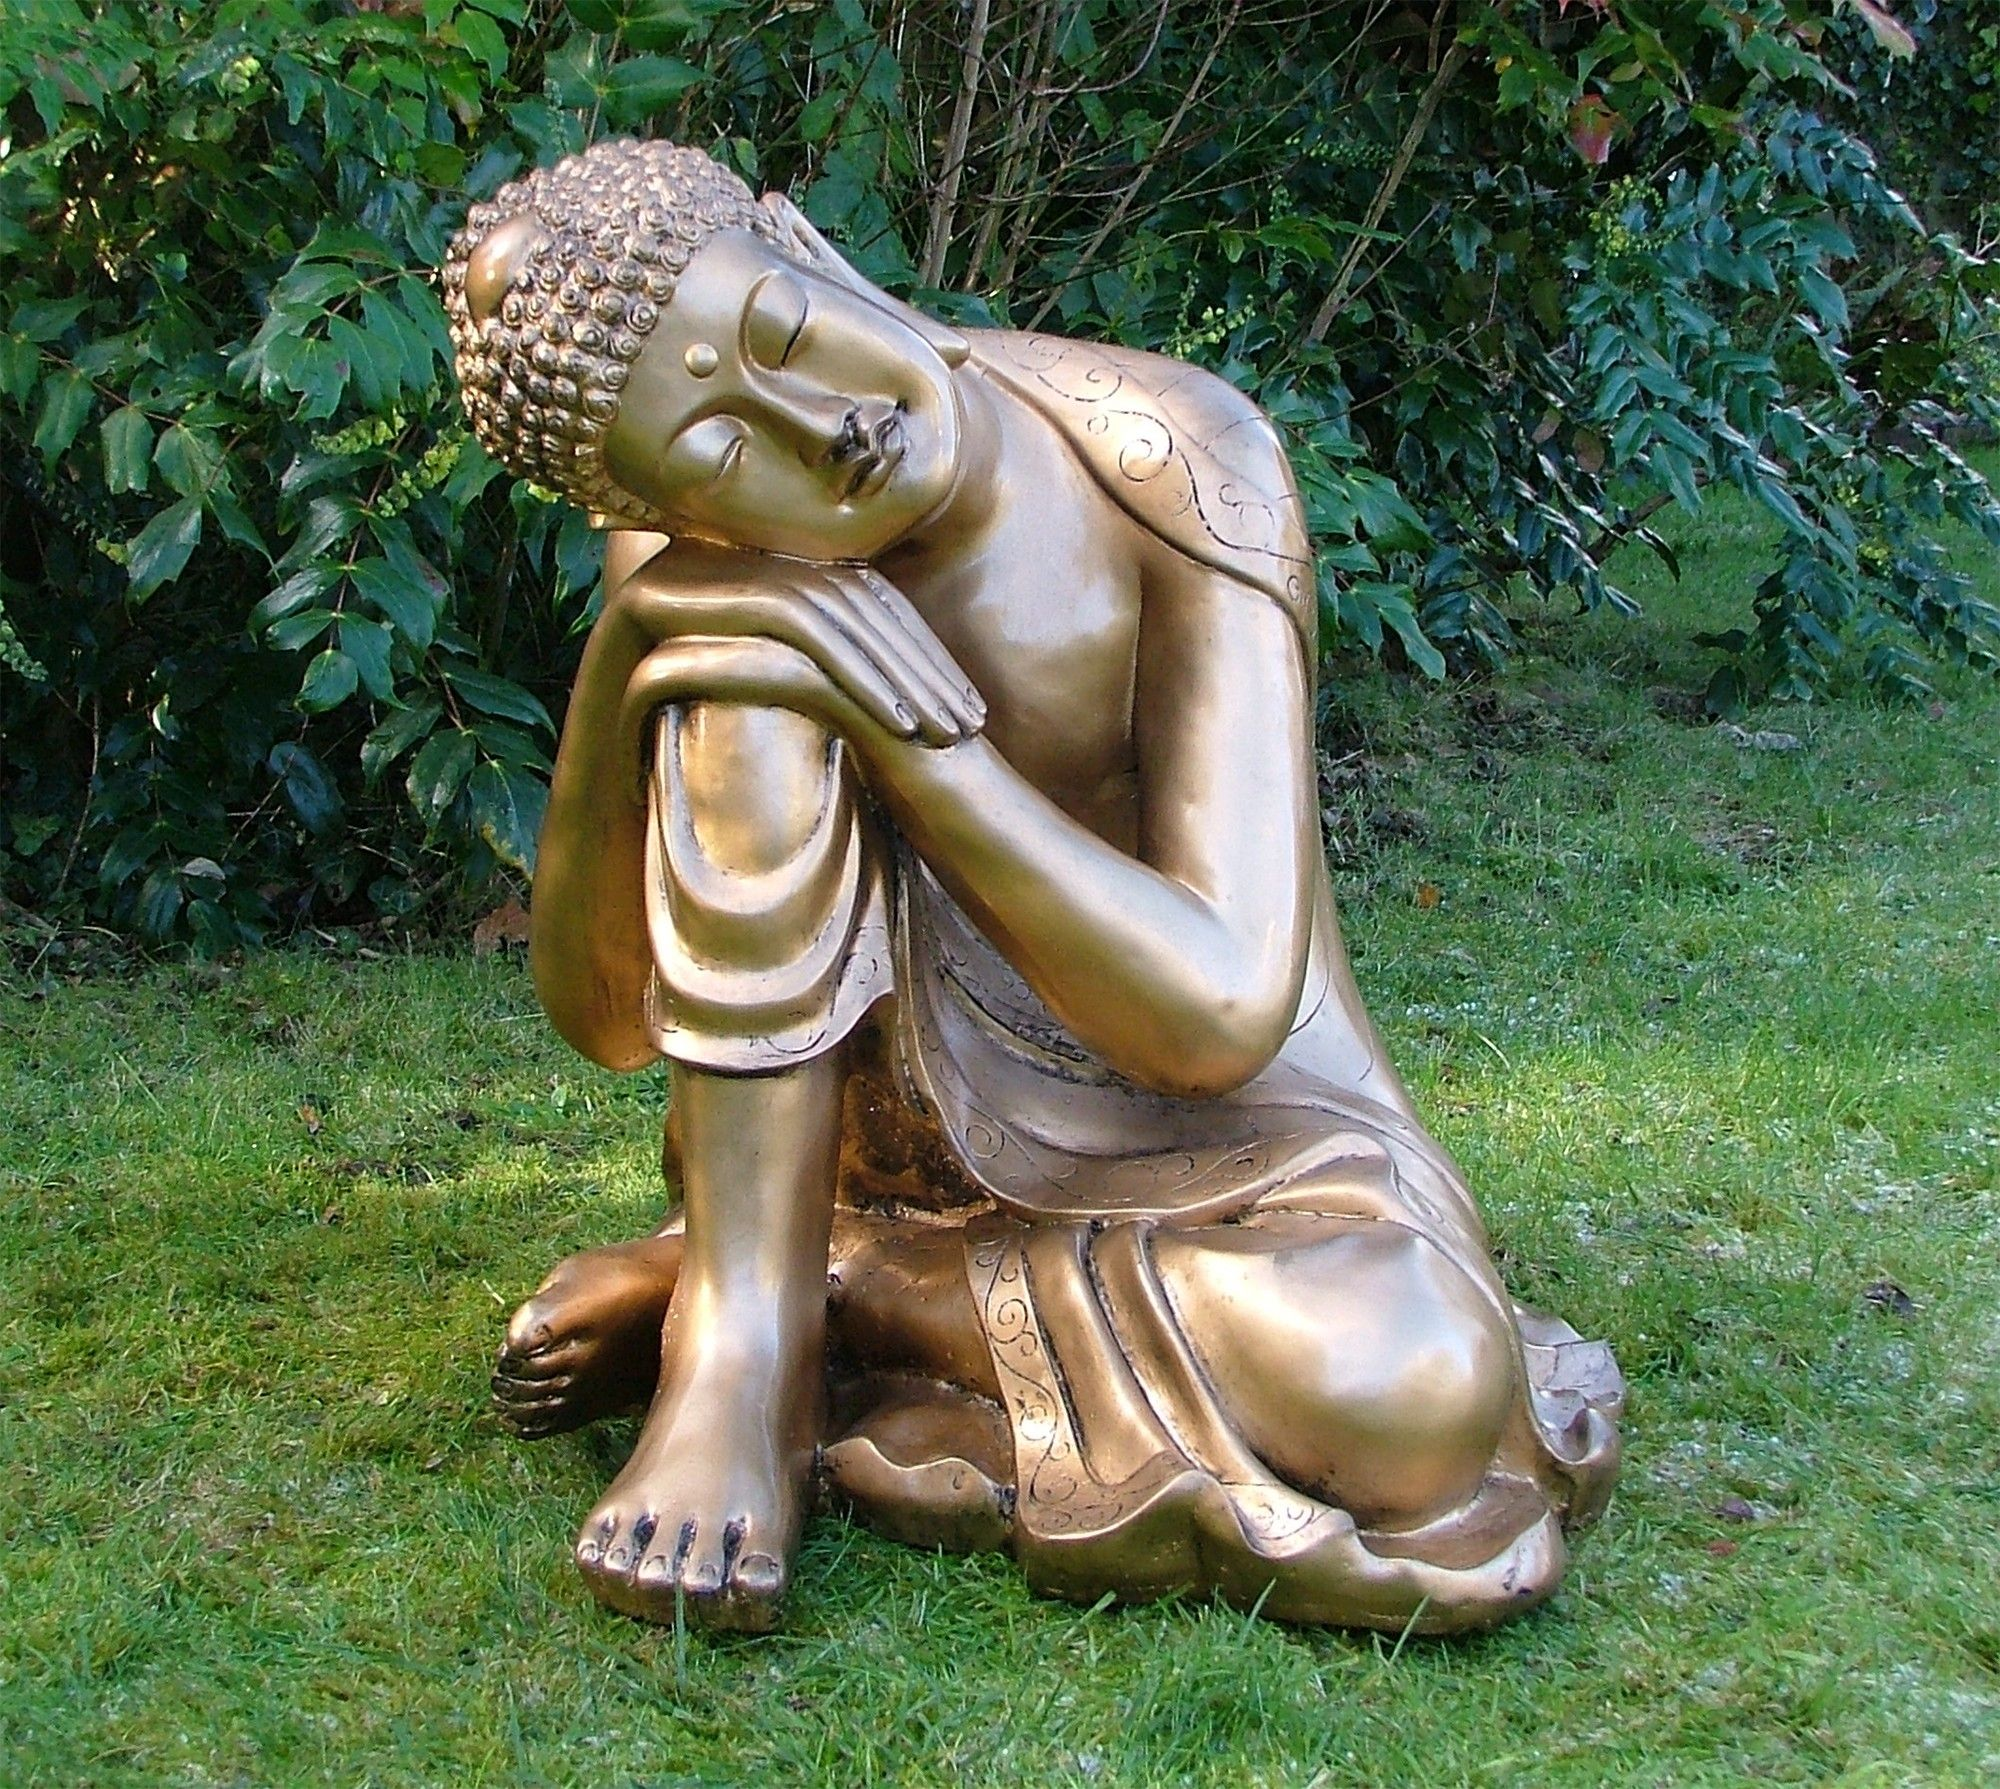 Ornaments for garden - Large Garden Ornaments Gold Sleeping Deity Buddha Statue Buy Now At Http